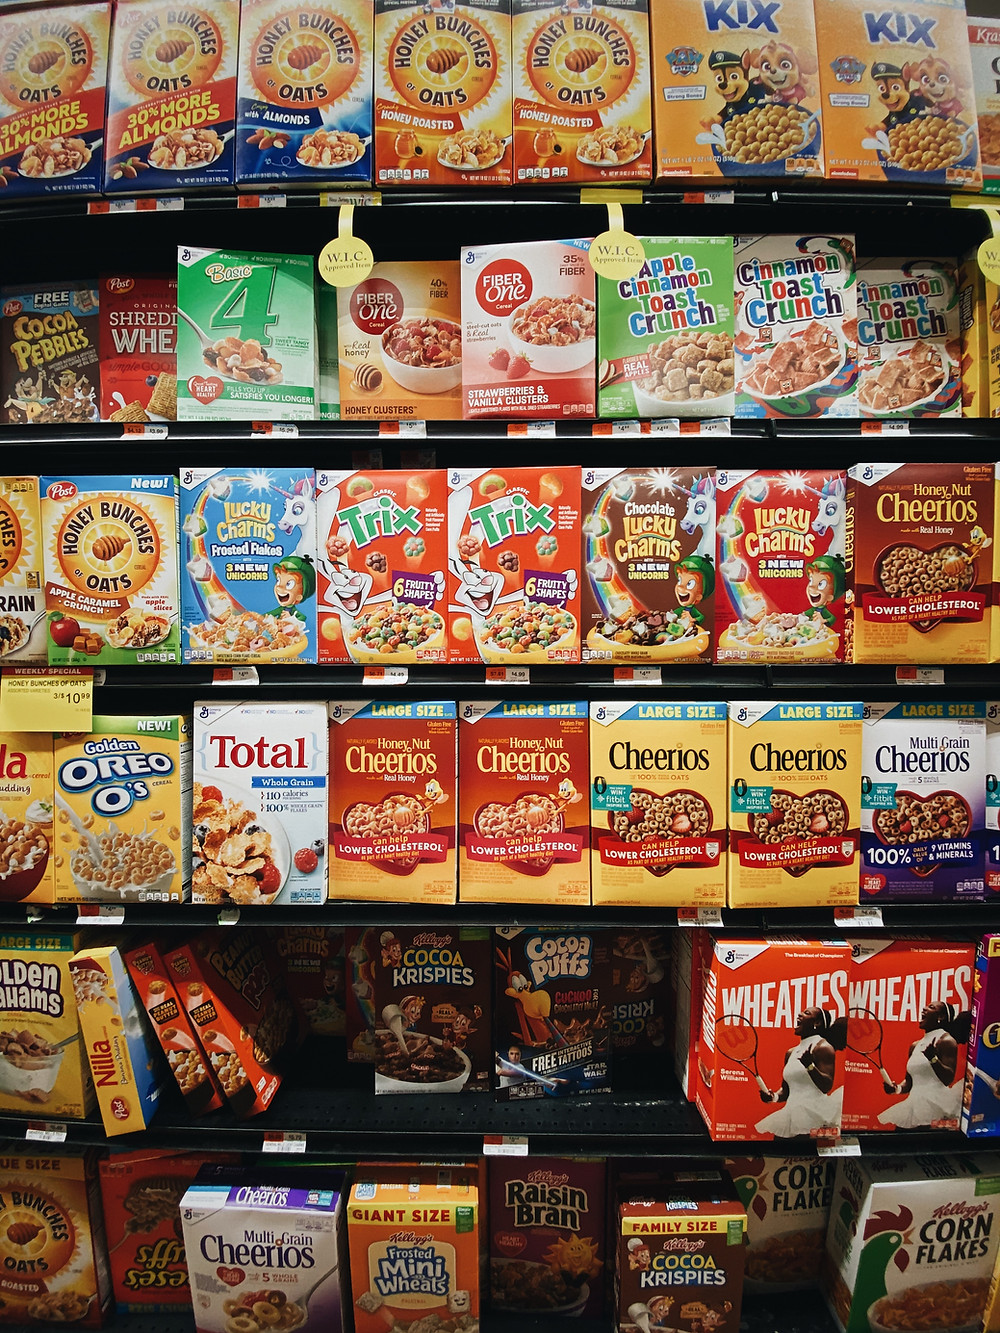 image courtesy of unsplash.com, cereal, cheerios, honey bunches of oats, cinnamon toast crunch